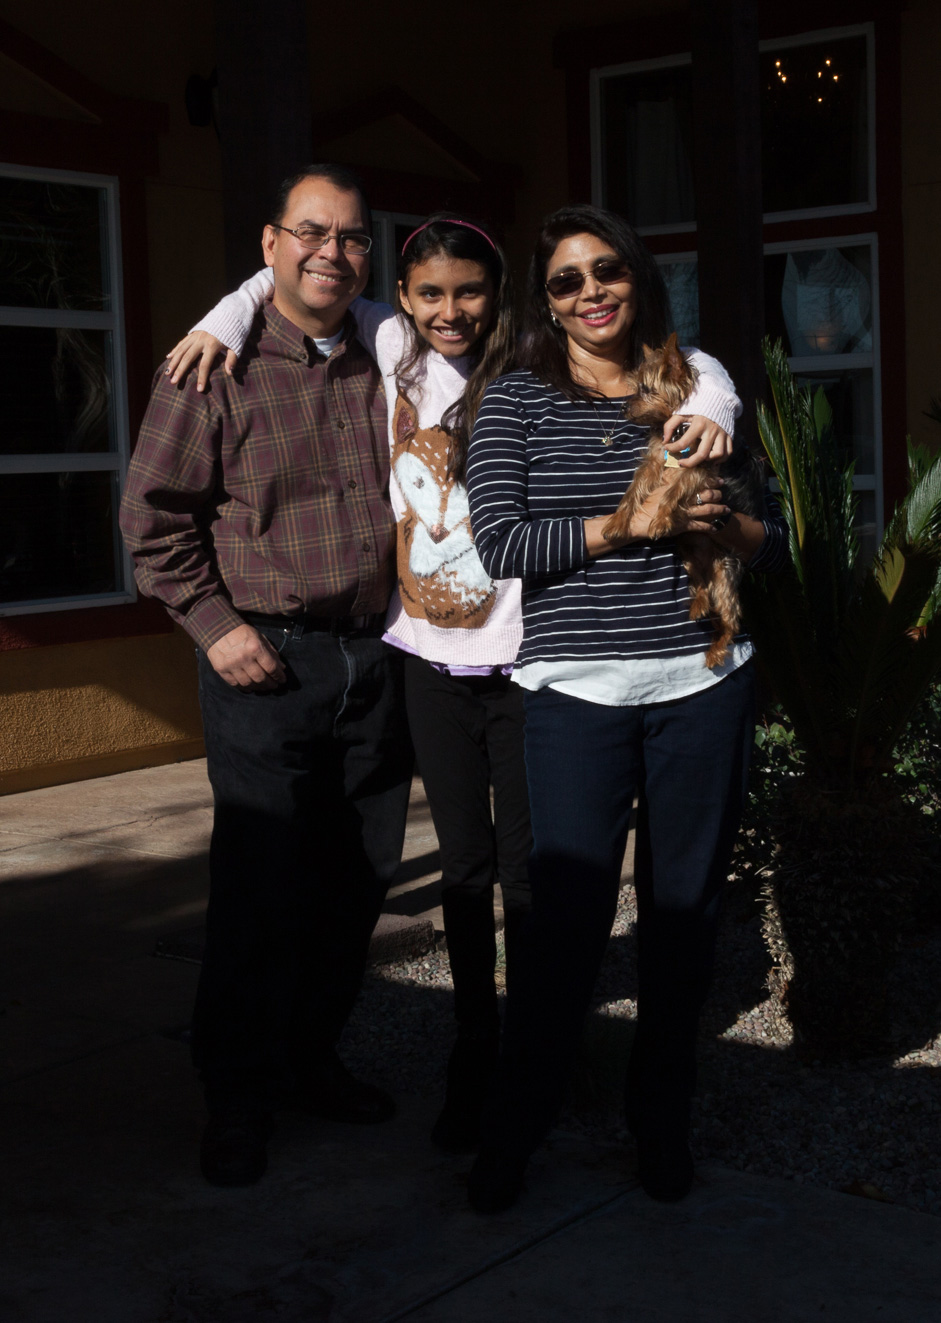 The Galindo family at home in Modesto, Calif.  Photo: Shaun Lucas for The Intercept